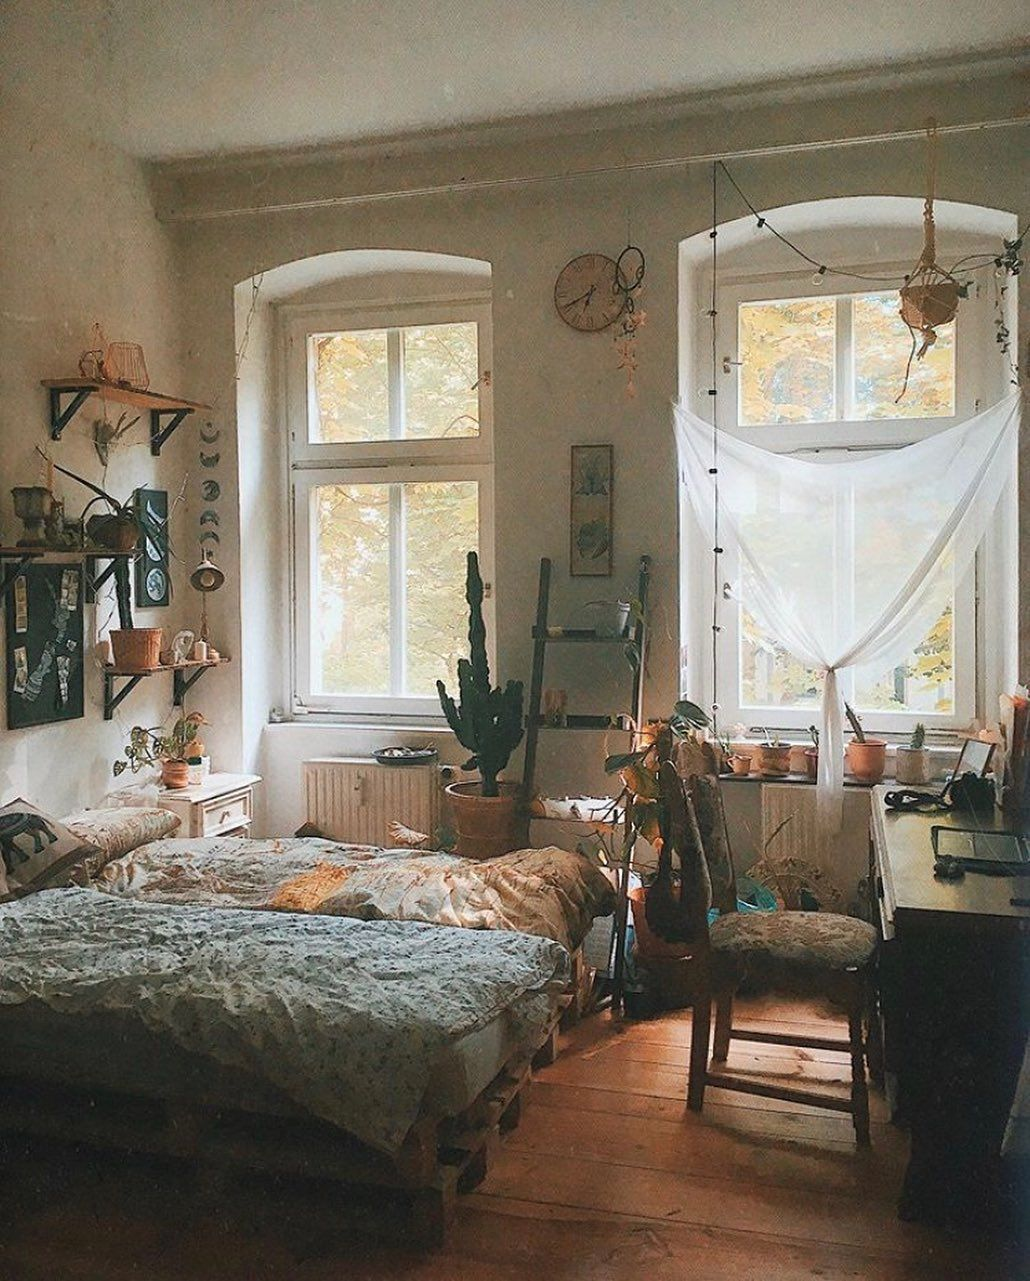 Check Out This Beautiful Boho Escape A Room Should Never Allow The Eye To Settle In One Place It Should Smile At You And C Room Ideas Bedroom Home New Room